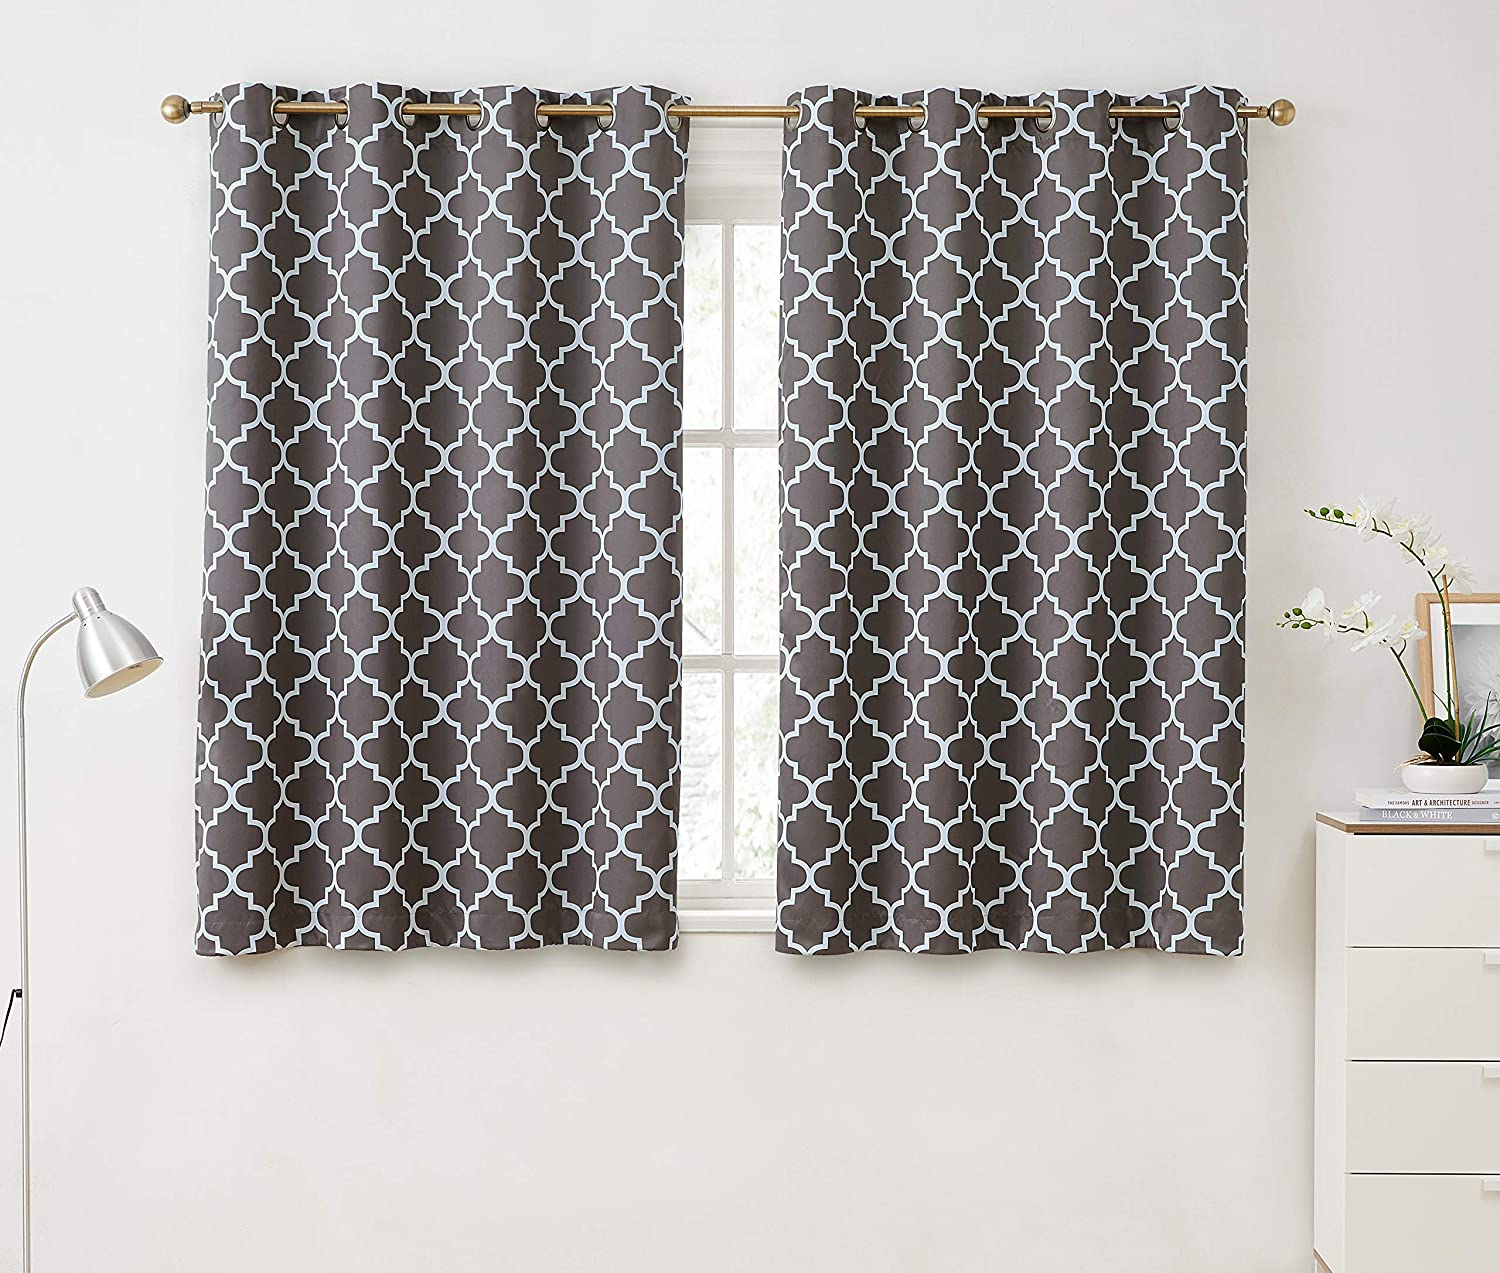 HLC.ME Lattice Print Thermal Insulated Room Darkening Blackout Window Grommet Curtains for Bedroom & Living Room